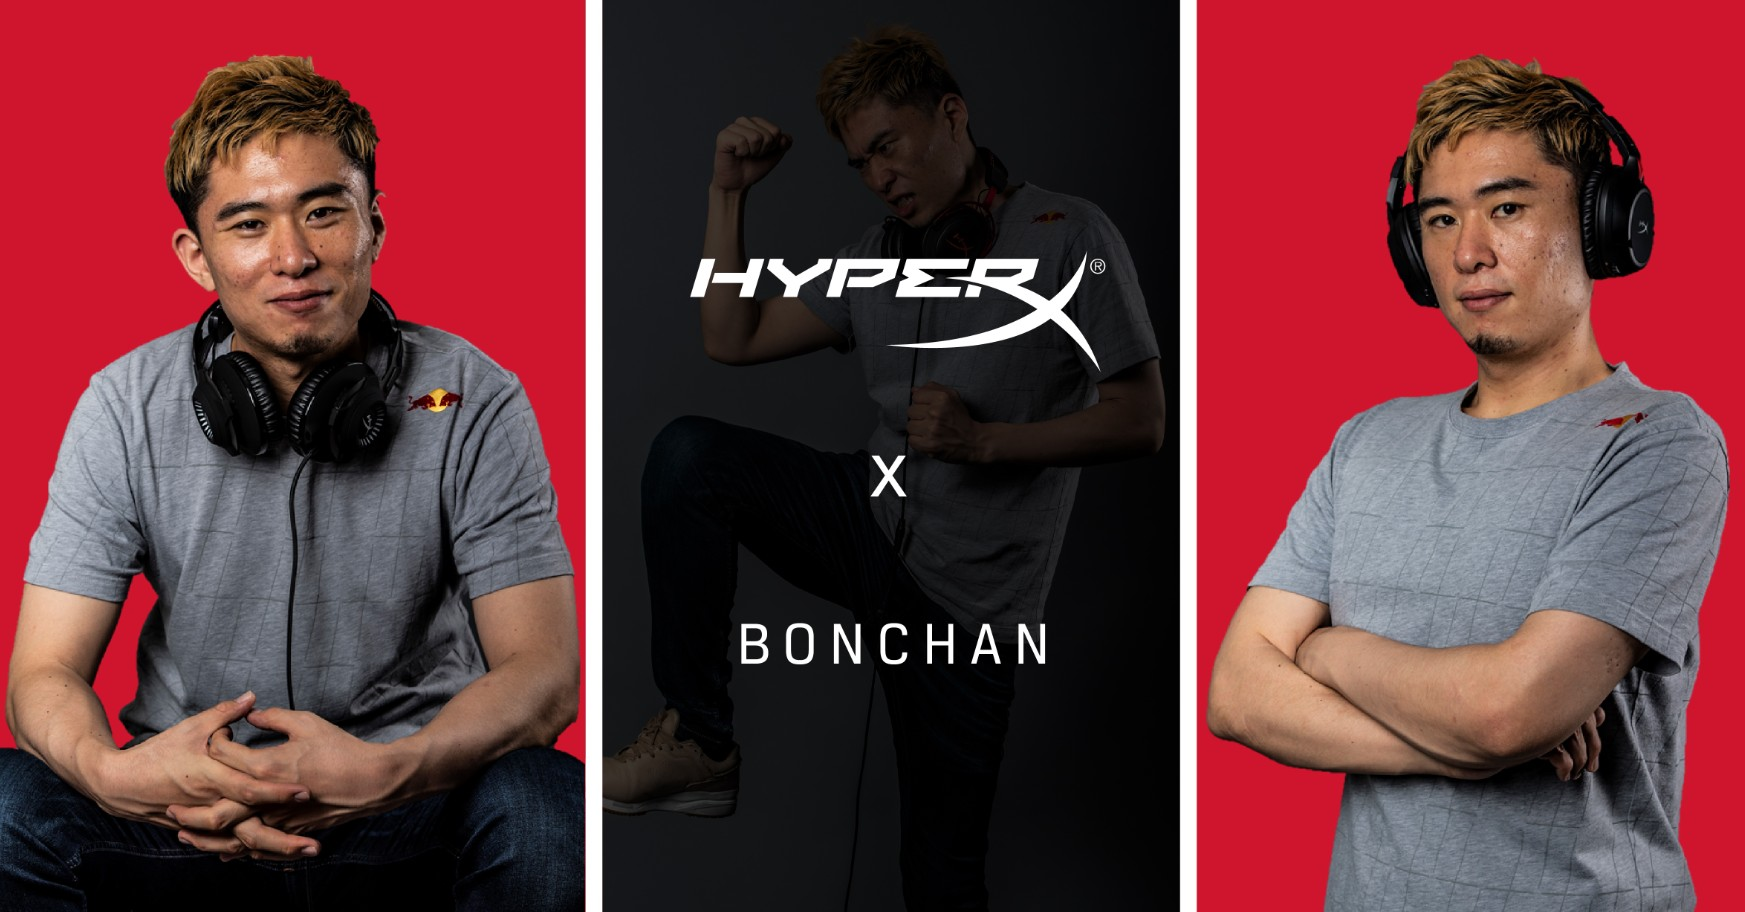 HyperX Now the Headset Sponsor of Bonchan